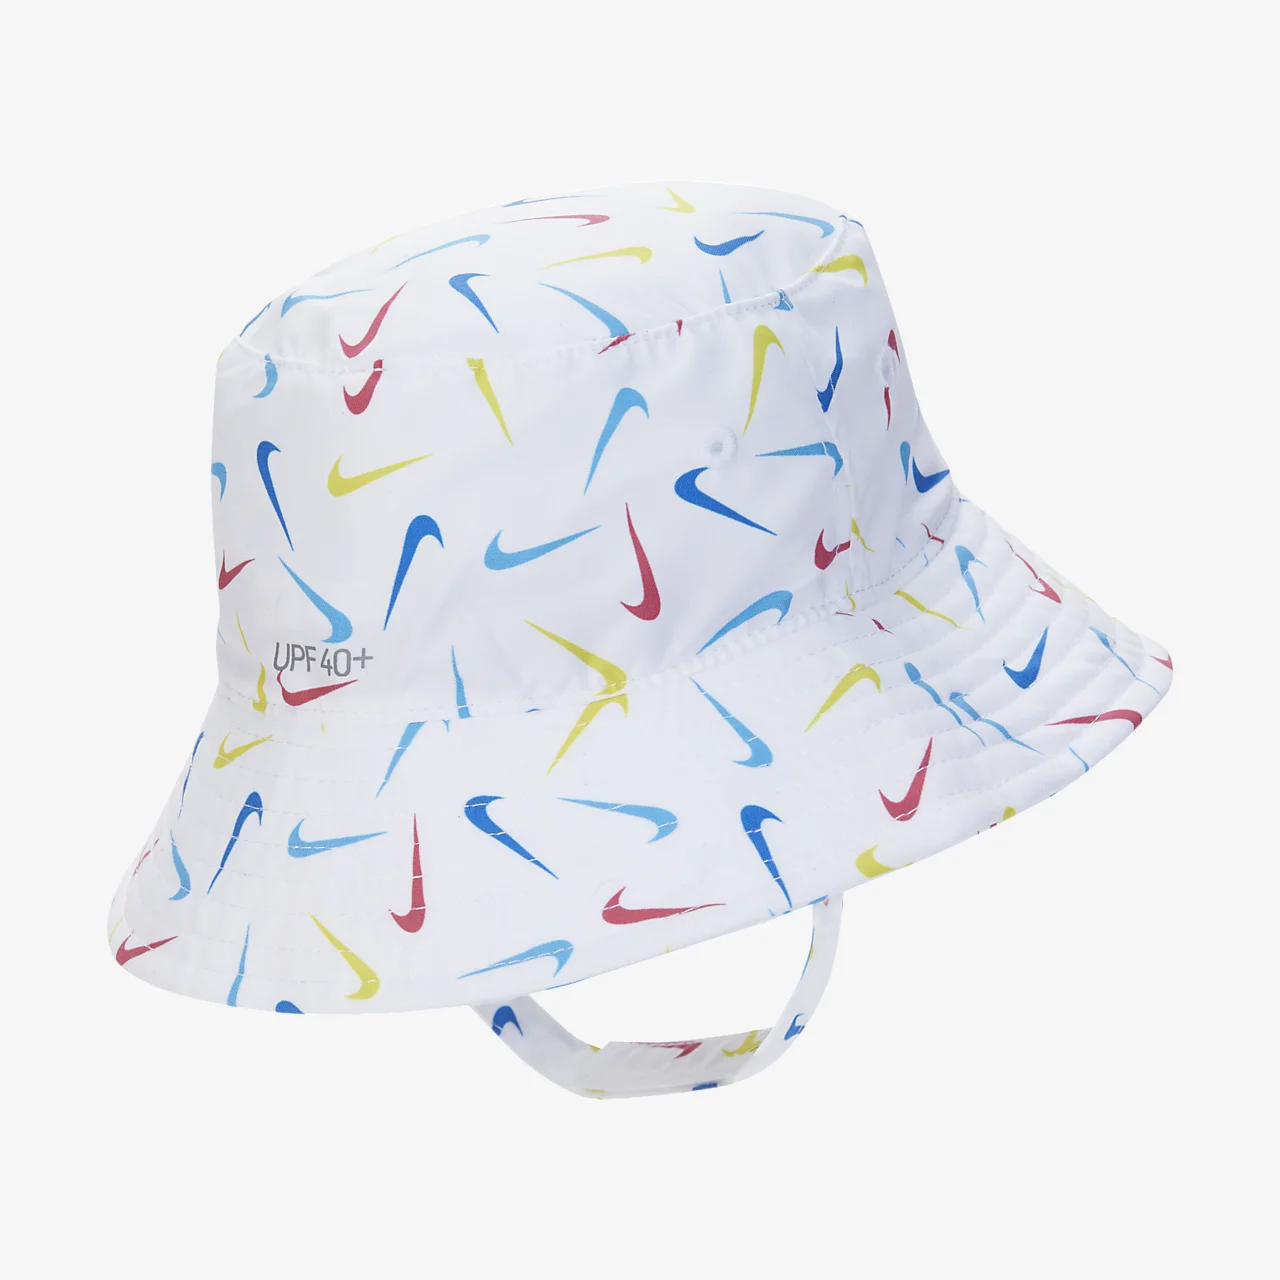 Nike Baby (12-24M) Printed Bucket Hat 6A2884-W4H